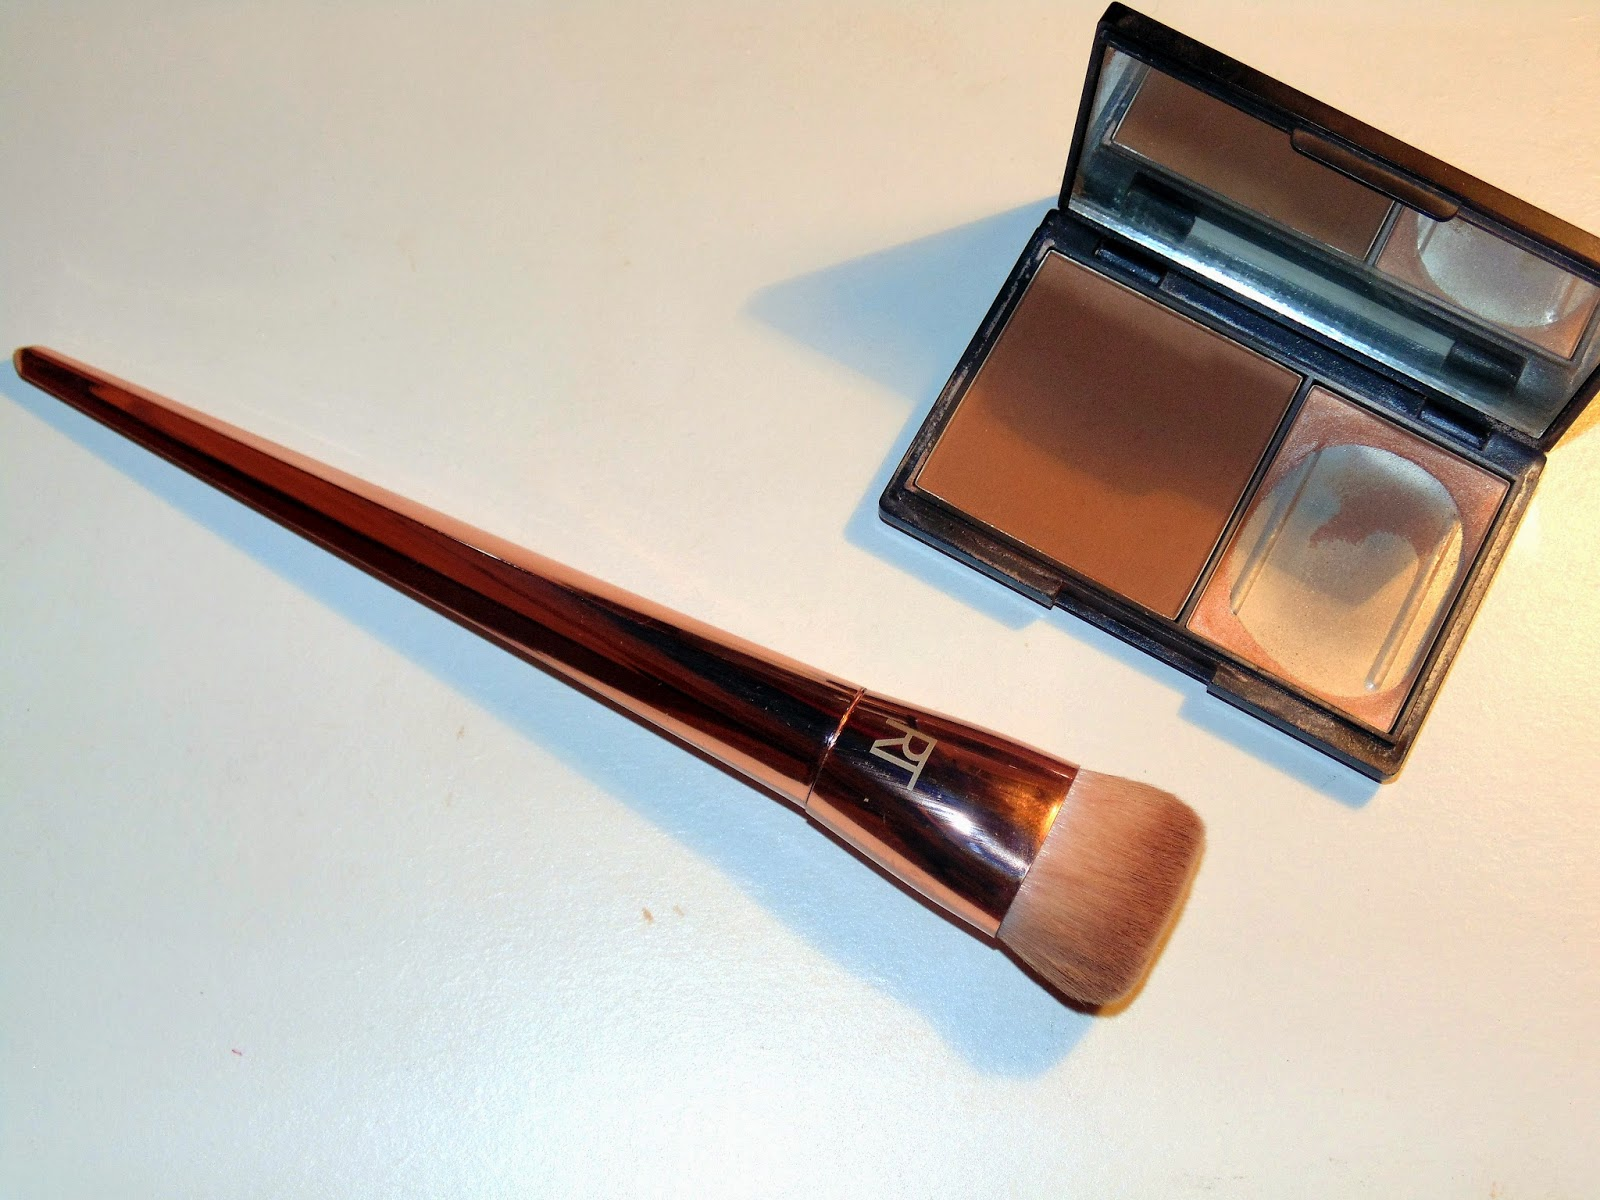 Real Techniques Bold Metal Collection Flat Contour Brush